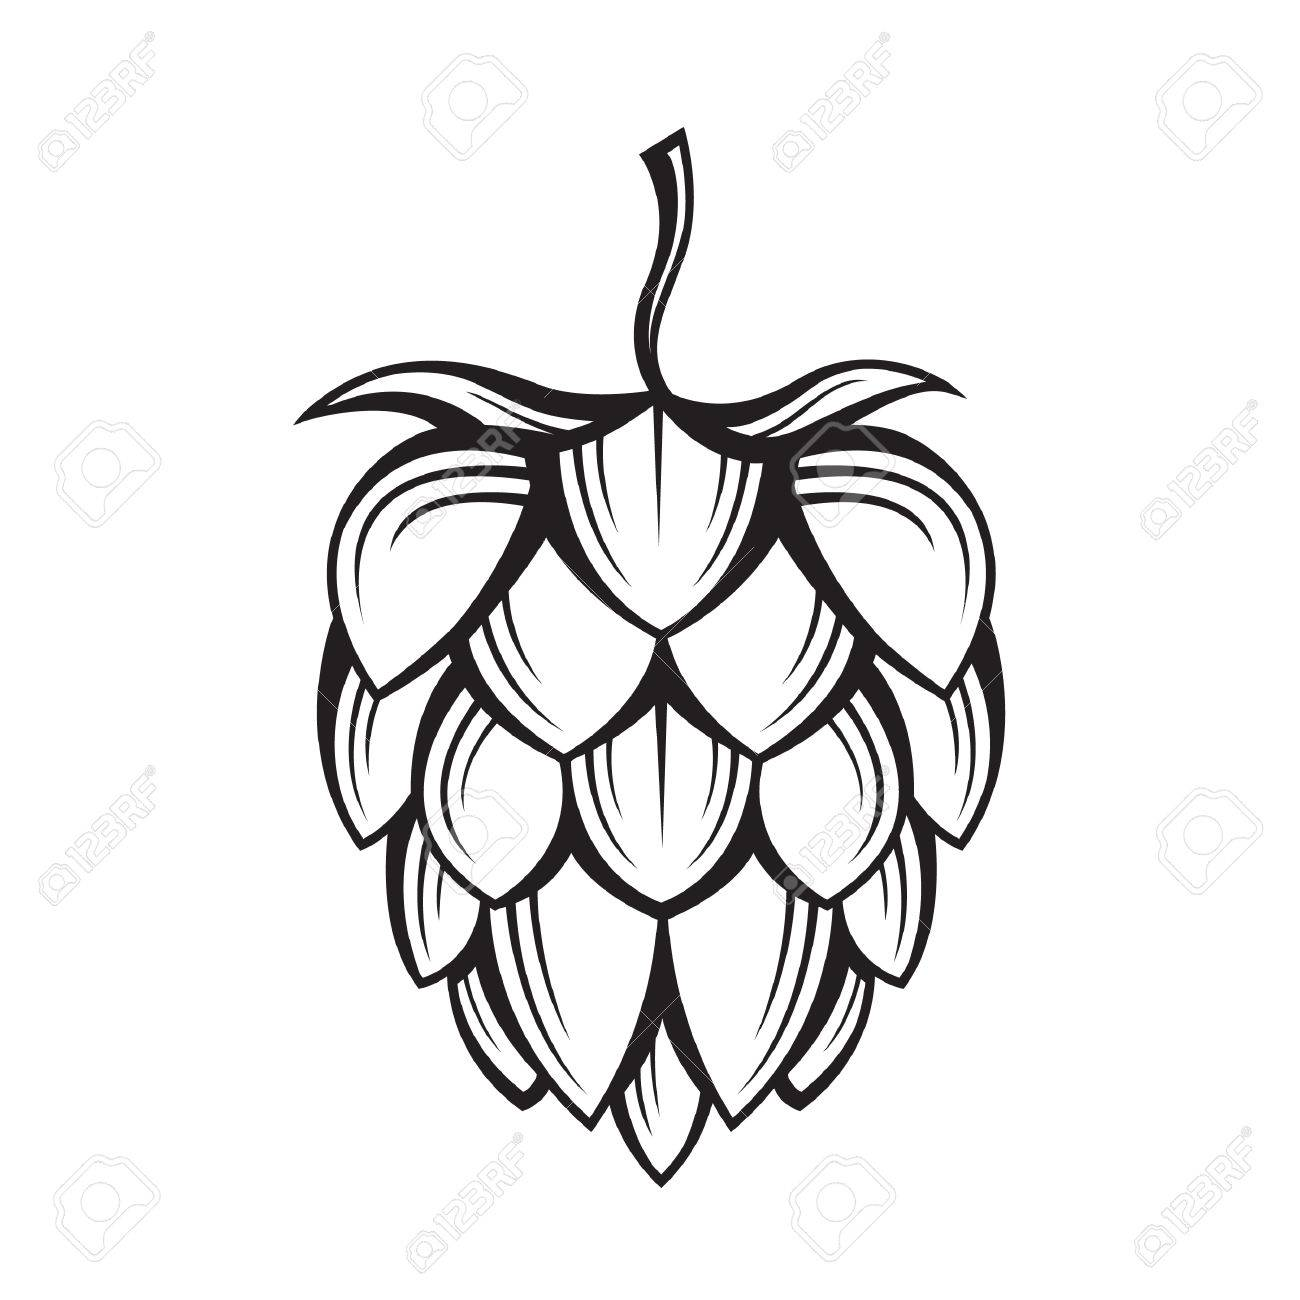 1300x1300 Black Illustration Of Hop For Brewing Royalty Free Cliparts